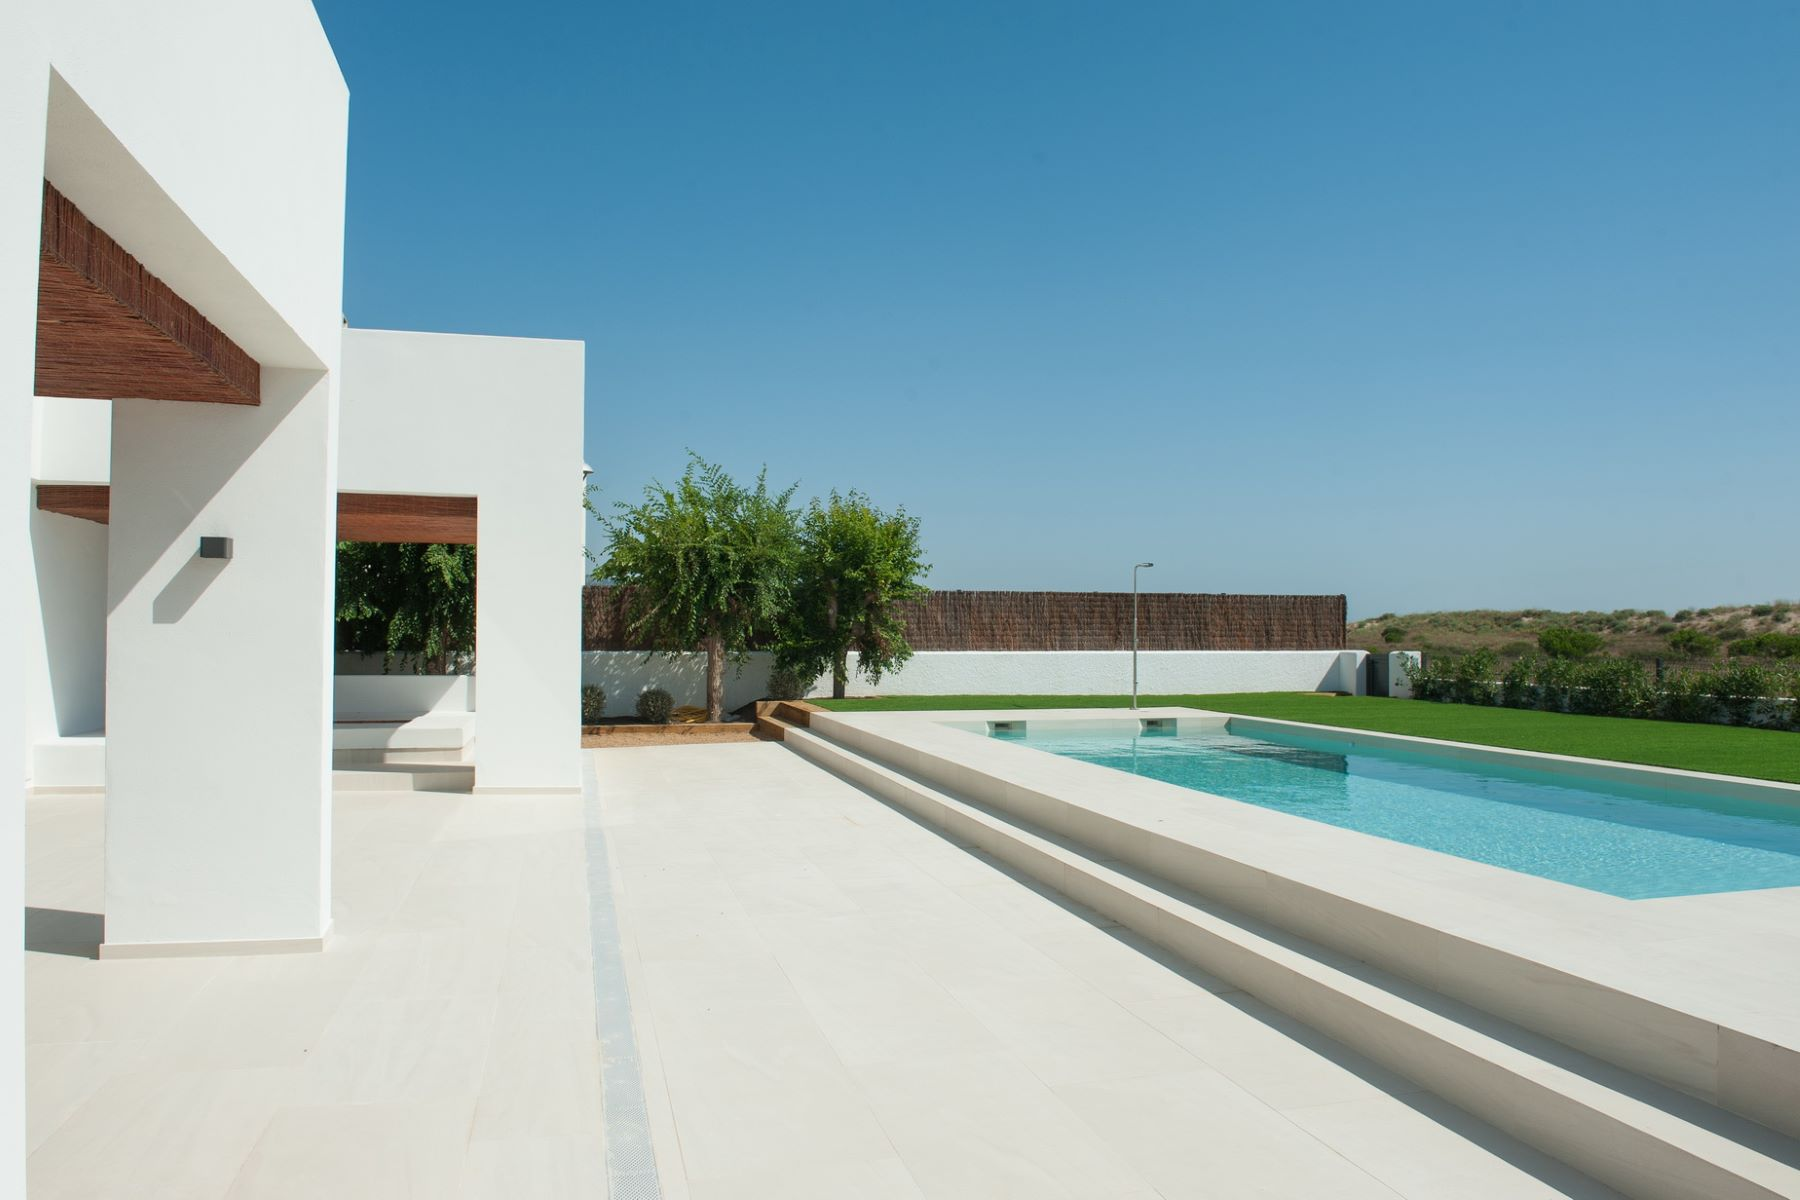 Single Family Home for Sale at Modern house on the beach Pals, Costa Brava, 17256 Spain